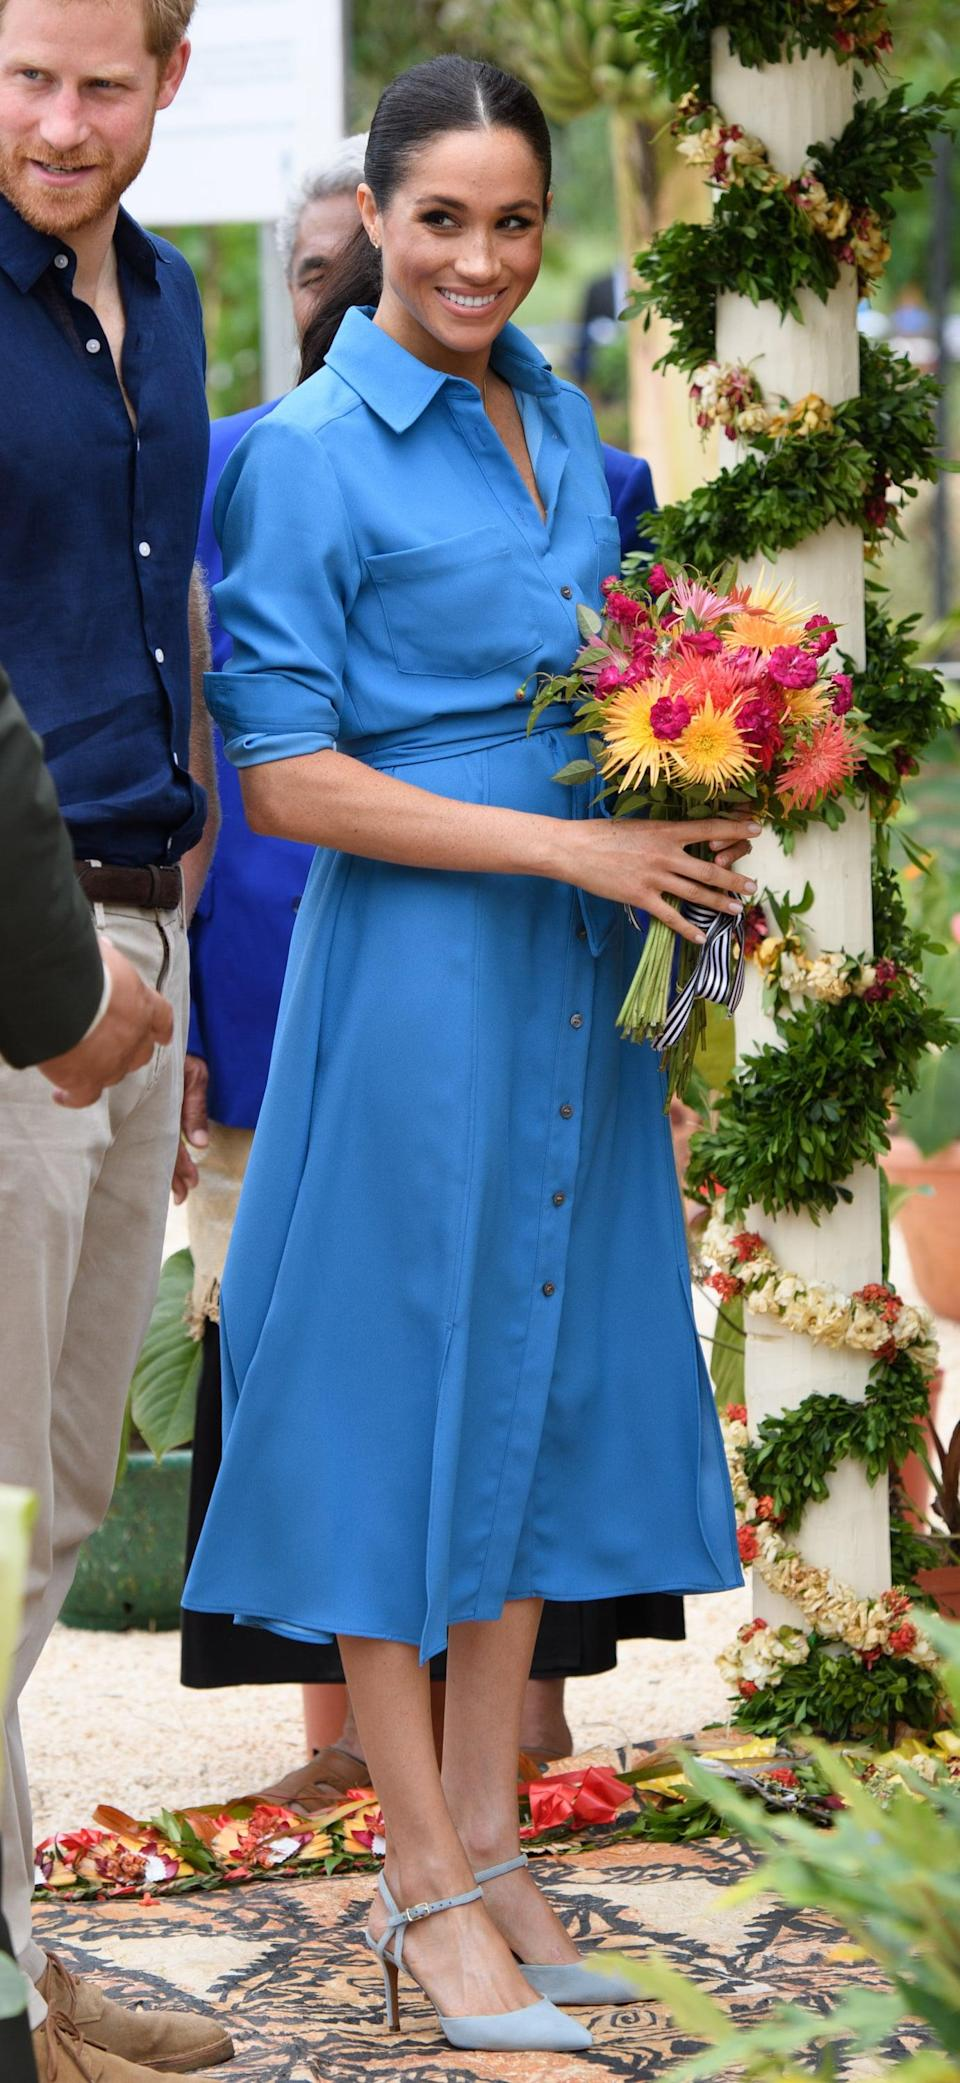 """<p>Meghan first wore <a href=""""https://www.popsugar.com/fashion/Meghan-Markle-Blue-Veronica-Beard-Dress-Tonga-2018-45423452"""" class=""""link rapid-noclick-resp"""" rel=""""nofollow noopener"""" target=""""_blank"""" data-ylk=""""slk:this cornflower-blue Veronica Beard shirtdress"""">this cornflower-blue Veronica Beard shirtdress</a> for the unveiling of The Queen's Commonwealth Canopy at Tupou College in in Nuku'alofa, Tonga, during her and Prince Harry's royal tour of Australia, Fiji, Tonga, and New Zealand in October 2018. </p>"""